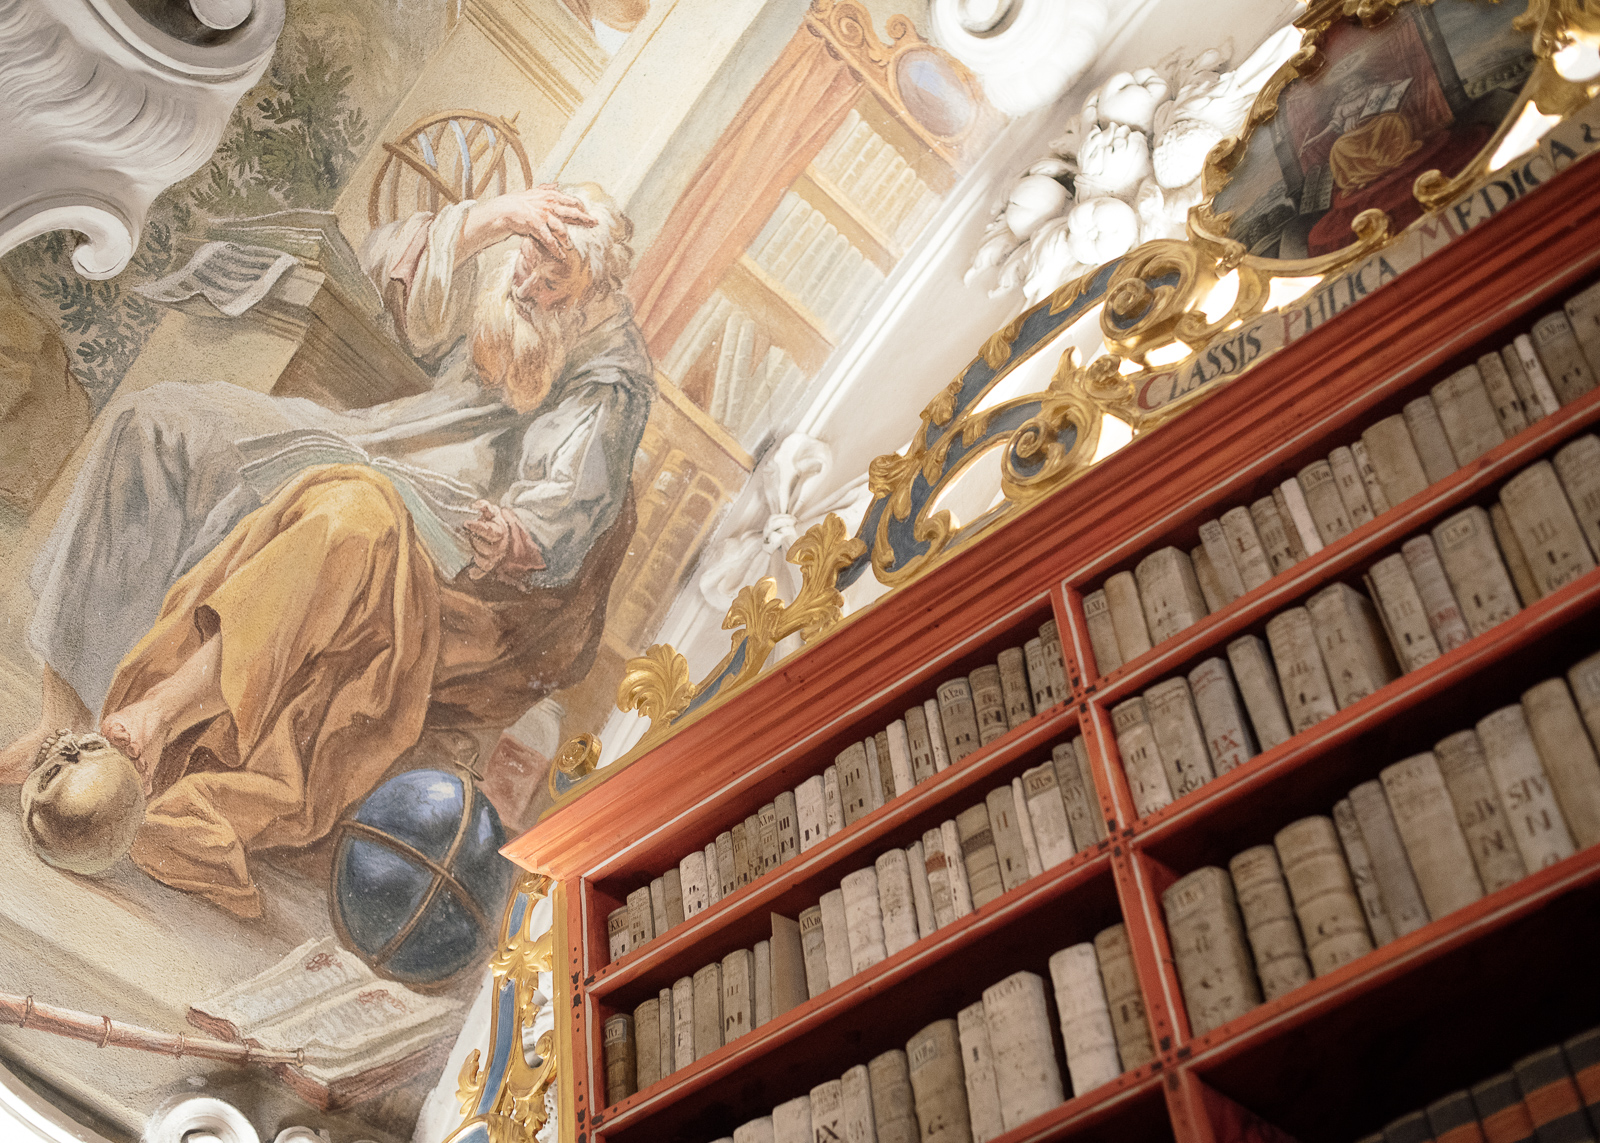 fresco in the theological hall of the strahov monastery library